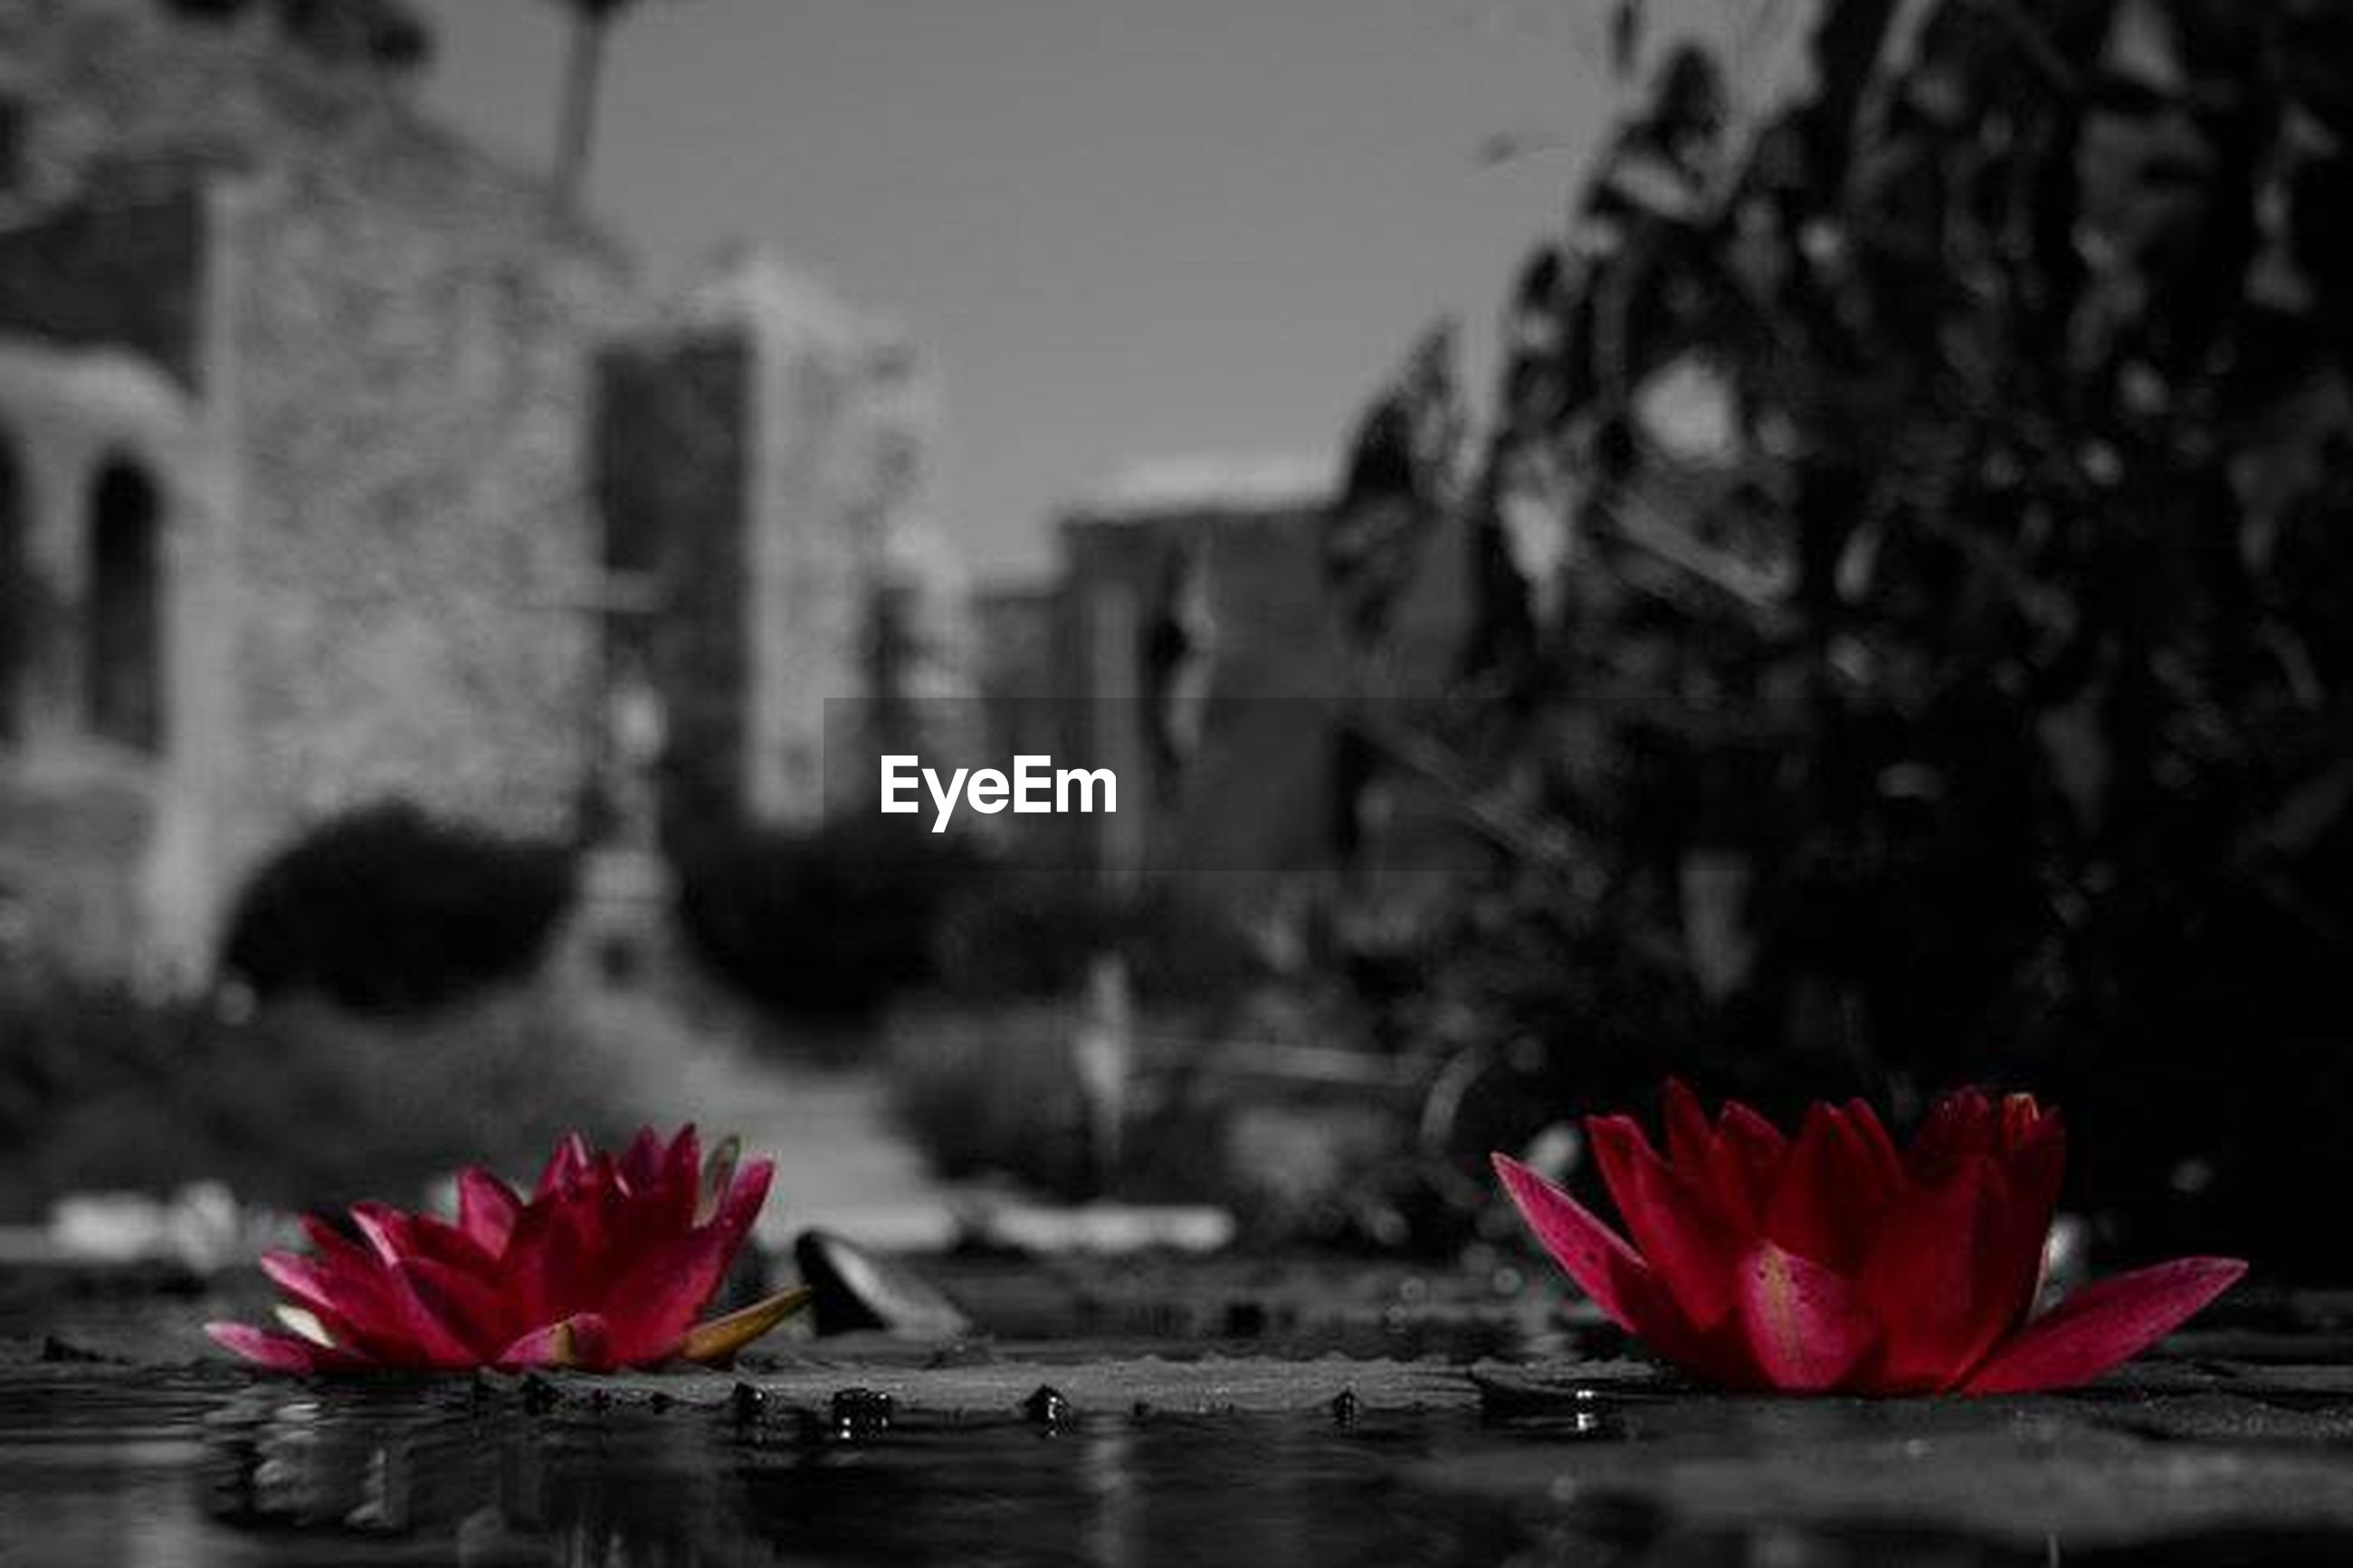 flower, petal, fragility, freshness, flower head, focus on foreground, water, pink color, close-up, red, blooming, beauty in nature, building exterior, nature, built structure, architecture, growth, day, outdoors, in bloom